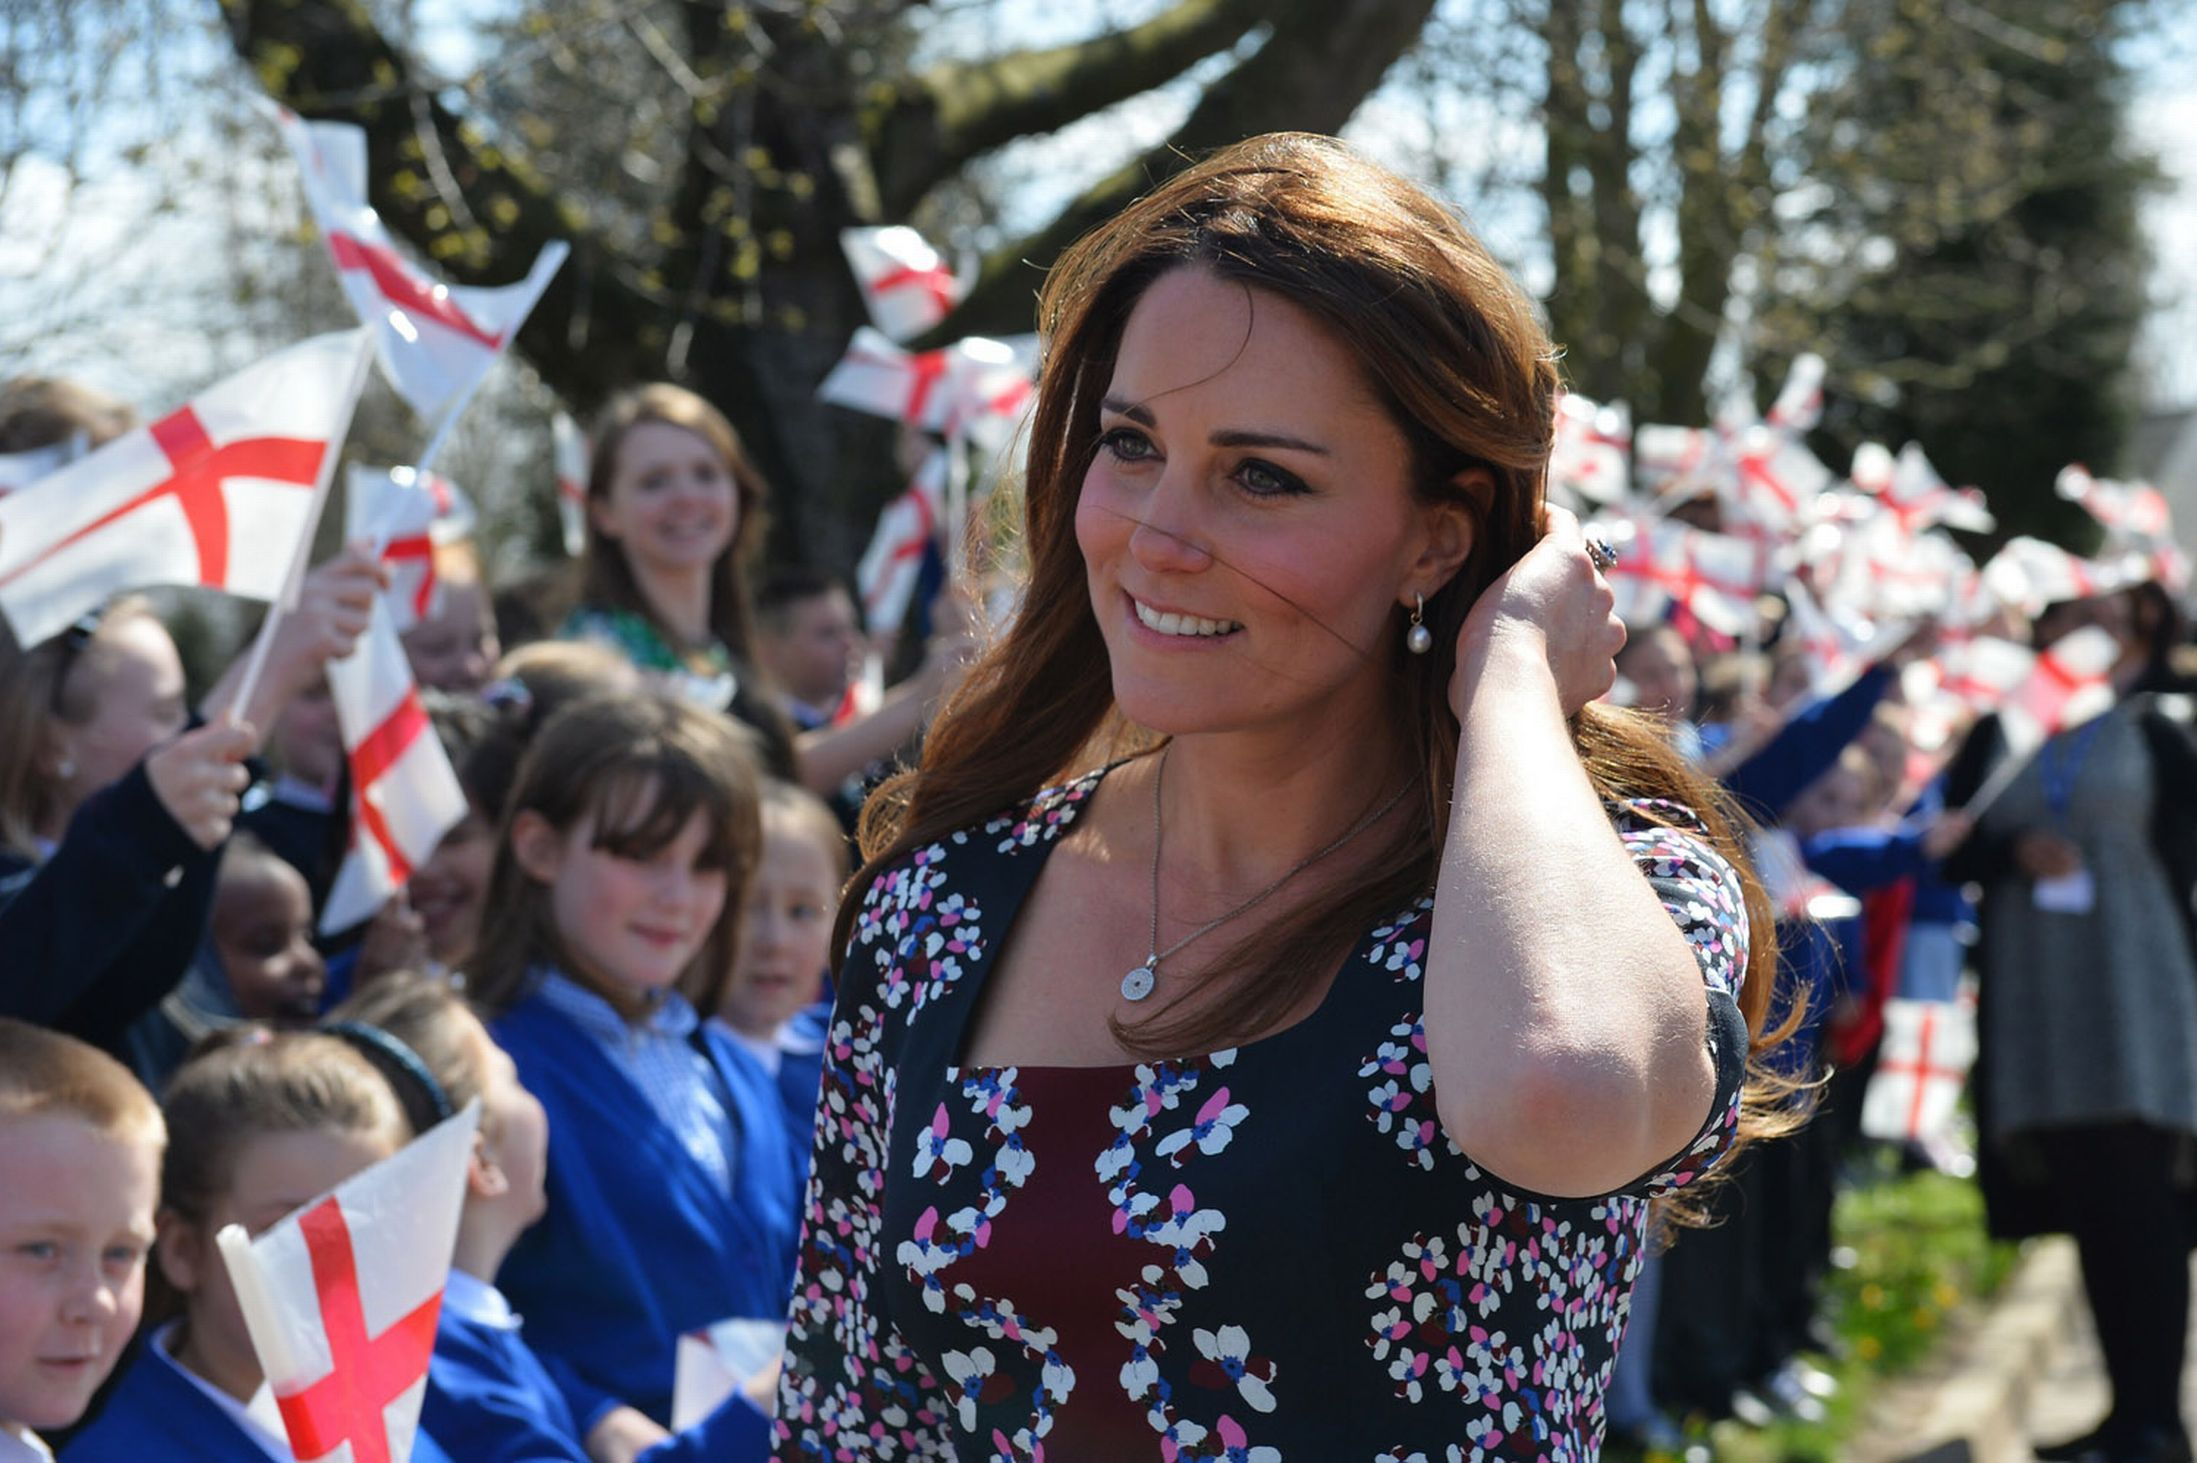 Kate Middleton Catherine Dutchess of Cambridge arriving at the Willows Primary School in Wythenshawe, Manchester for a charity engagement. April, 23, 2013